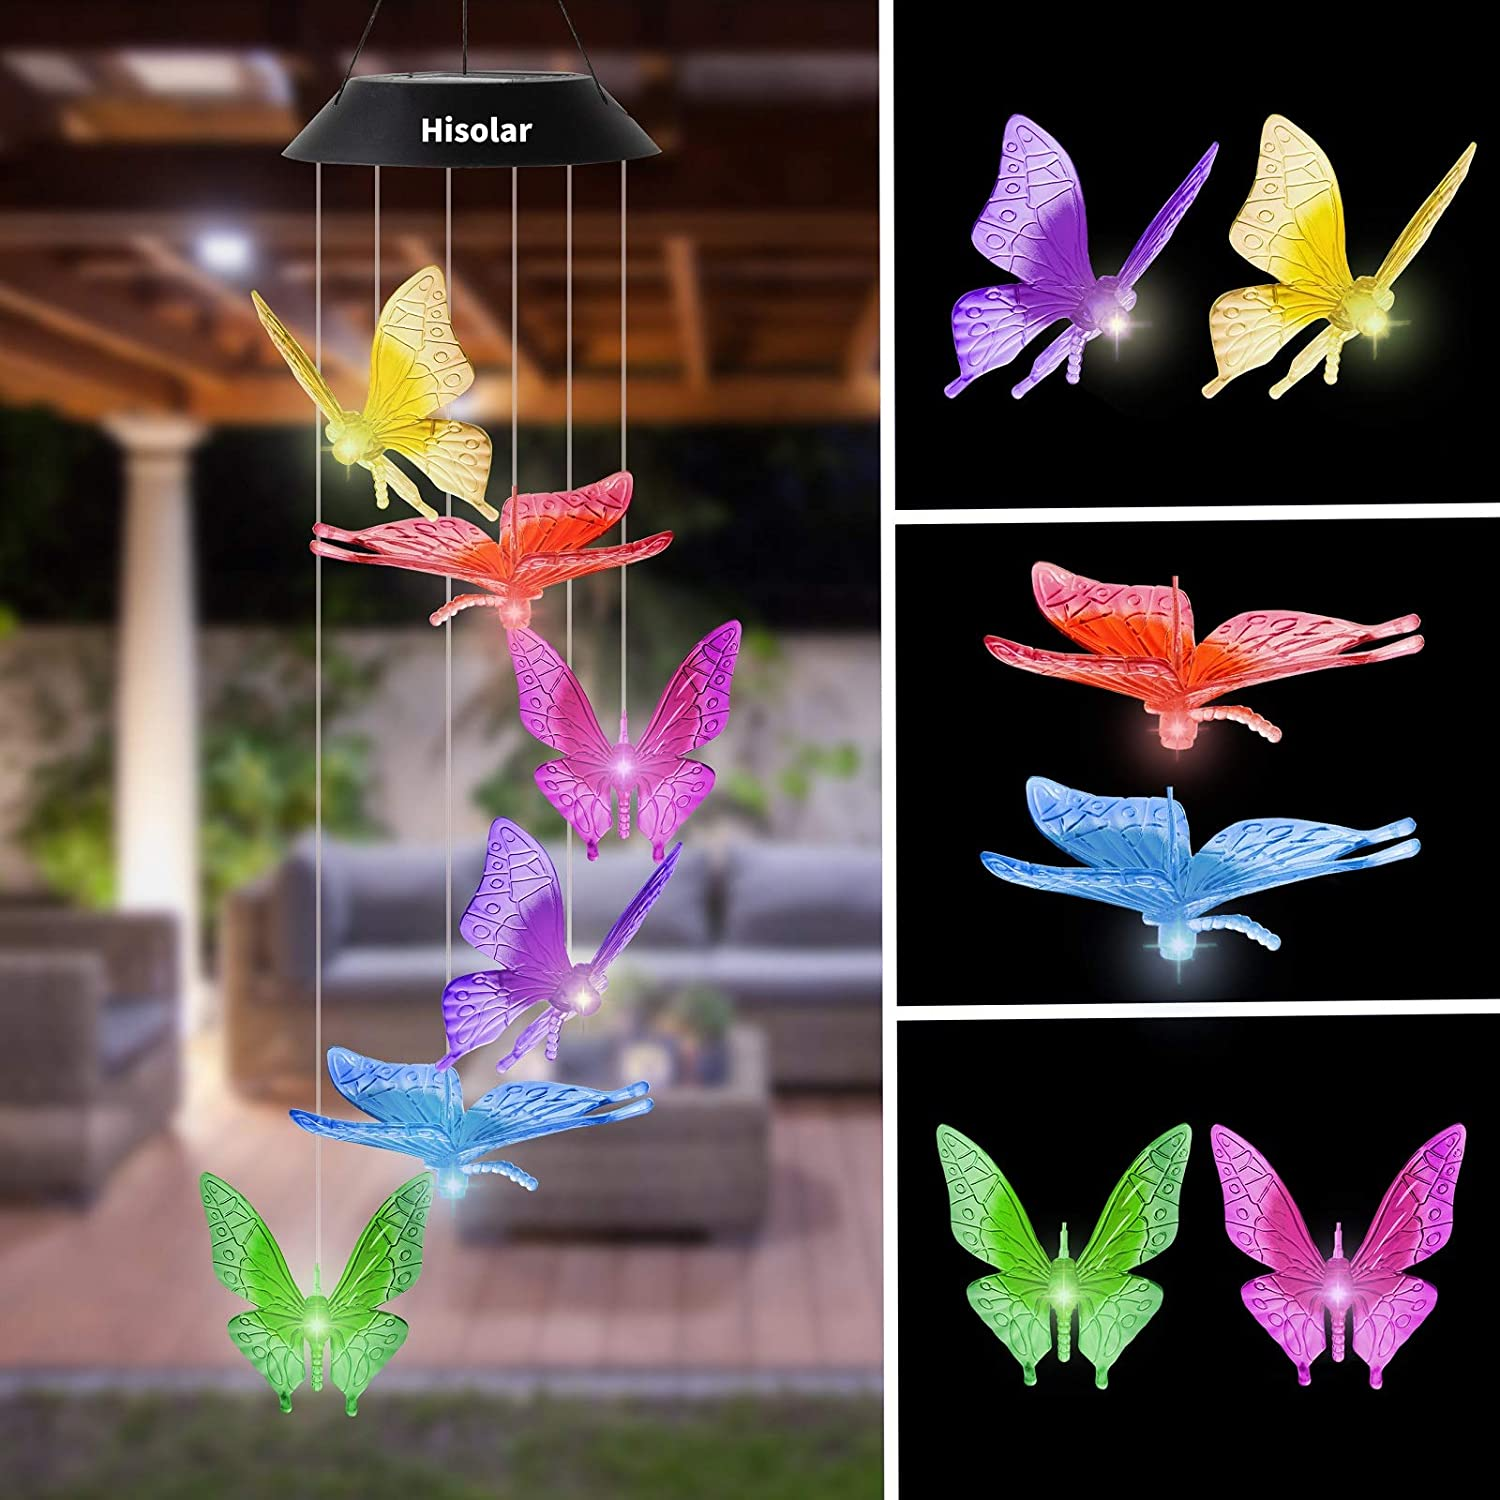 HiSolar Butterfly Solar Wind Chime Color Changing Solar Mobile Light Waterproof LED Wind Chime Solar Powered Wind Mobile Colorful Light for Home Party Yard Garden Decoration(Yellow Blue)